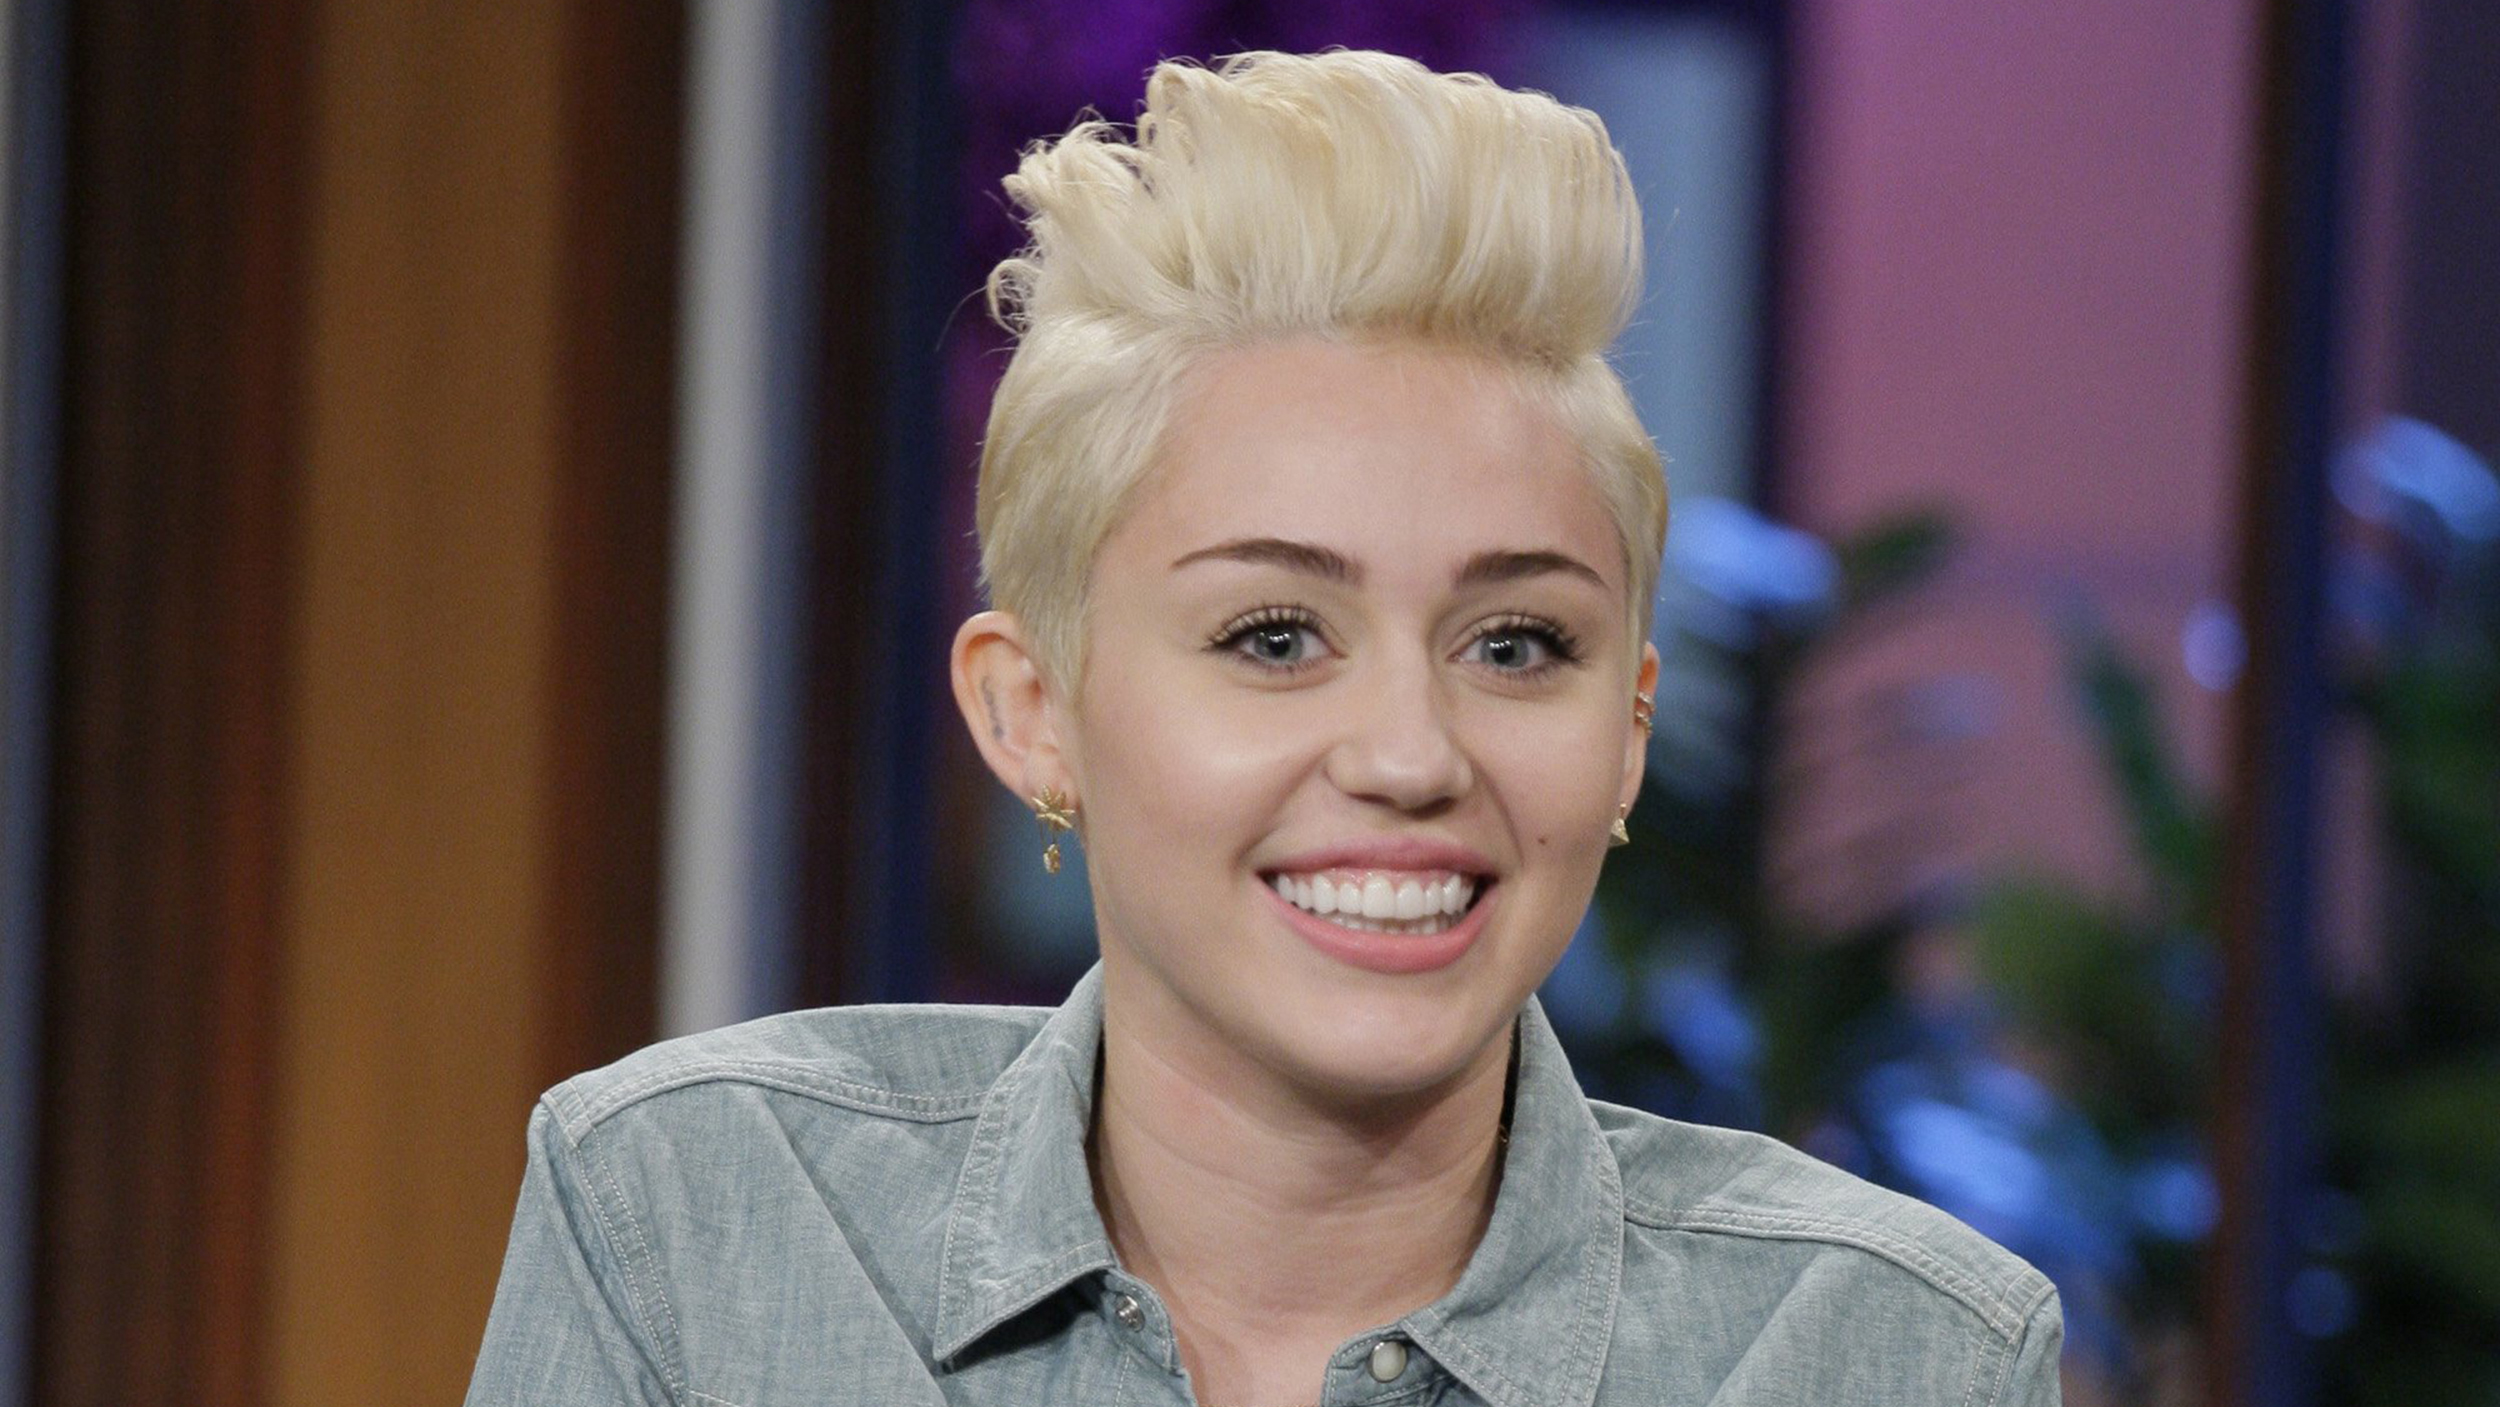 THE TONIGHT SHOW WITH JAY LENO -- Episode 4605 -- Pictured: Miley Cyrus during an interview on January 30, 2014 -- (Photo by: Paul Drinkwater/NBC/NBCU...